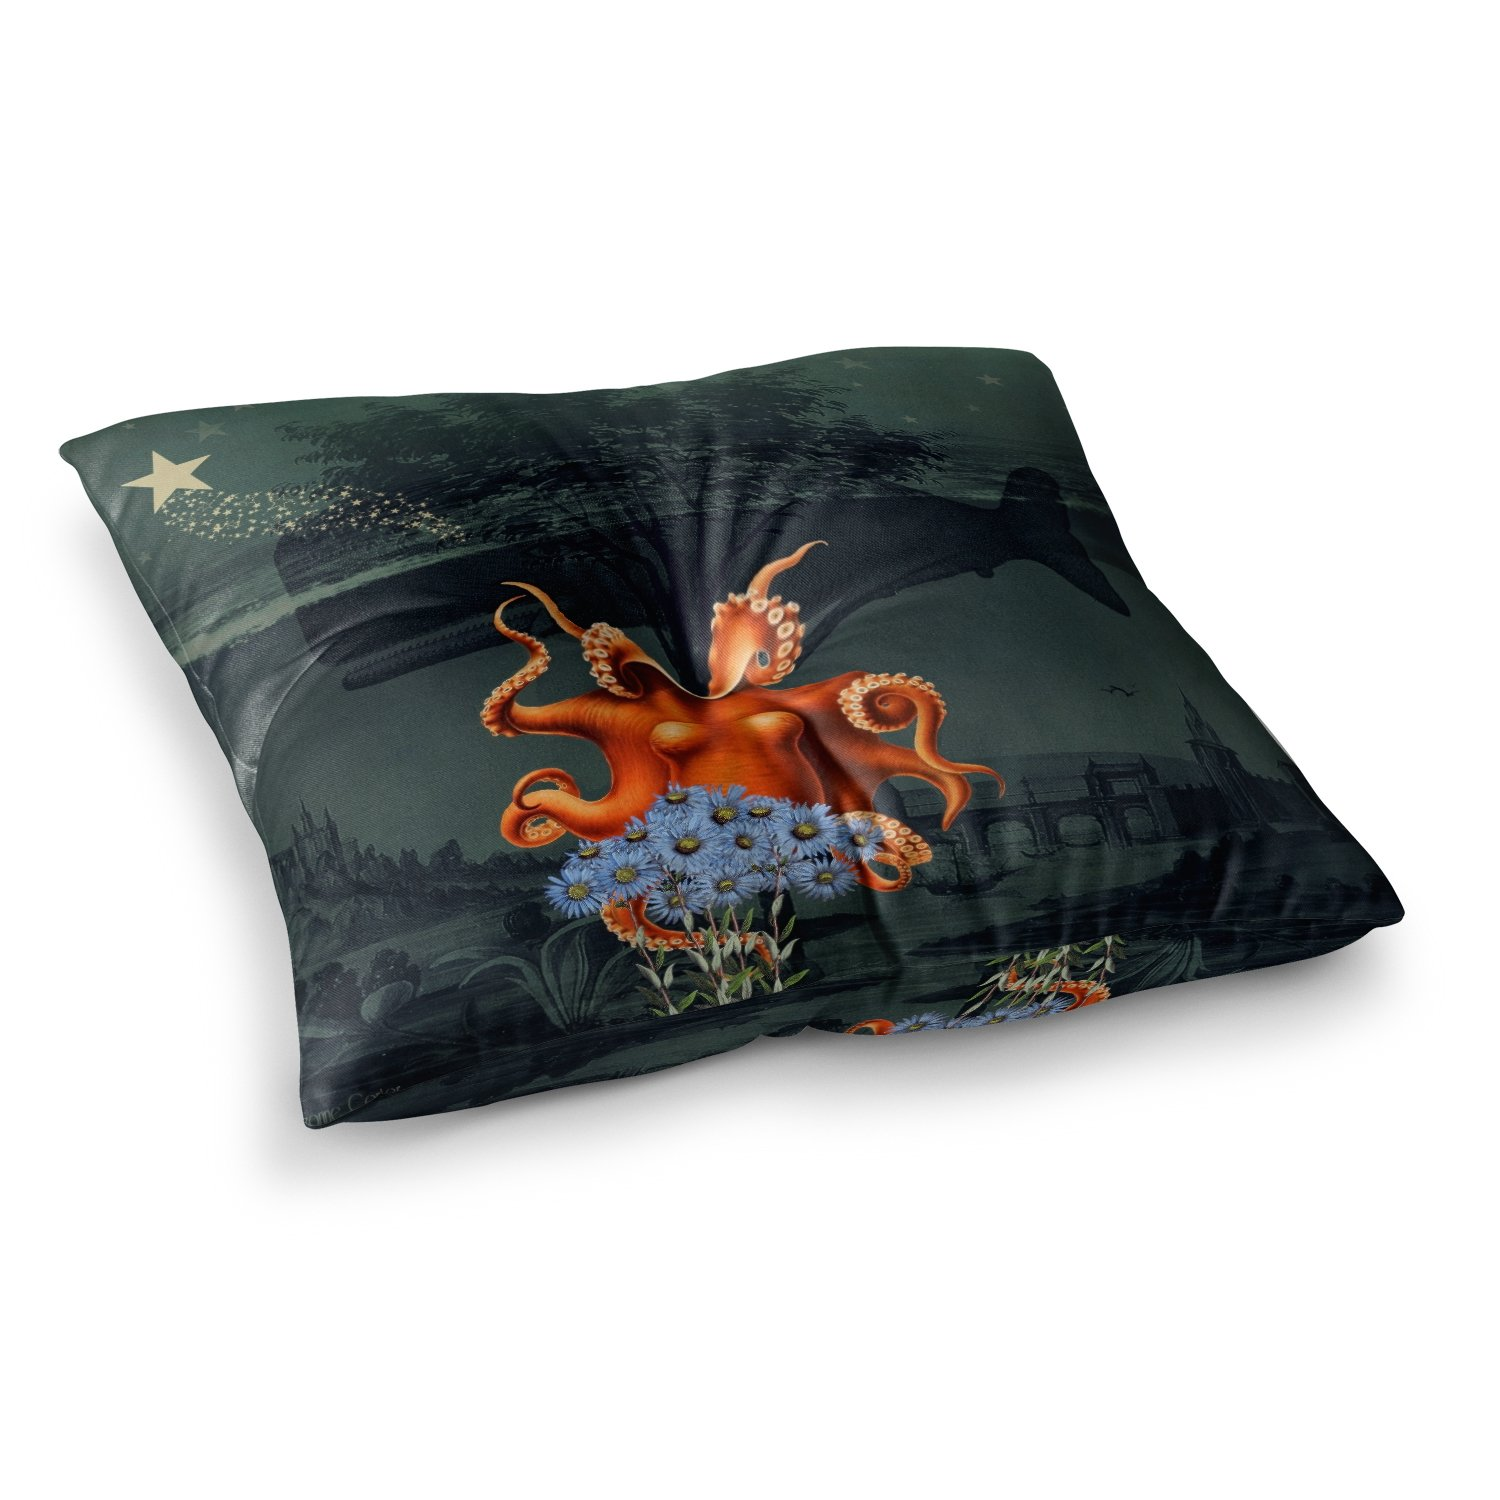 Kess InHouse Suzanne Carter Under The Deep Blue Sea Green Orange, 23' x 23' Square Floor Pillow